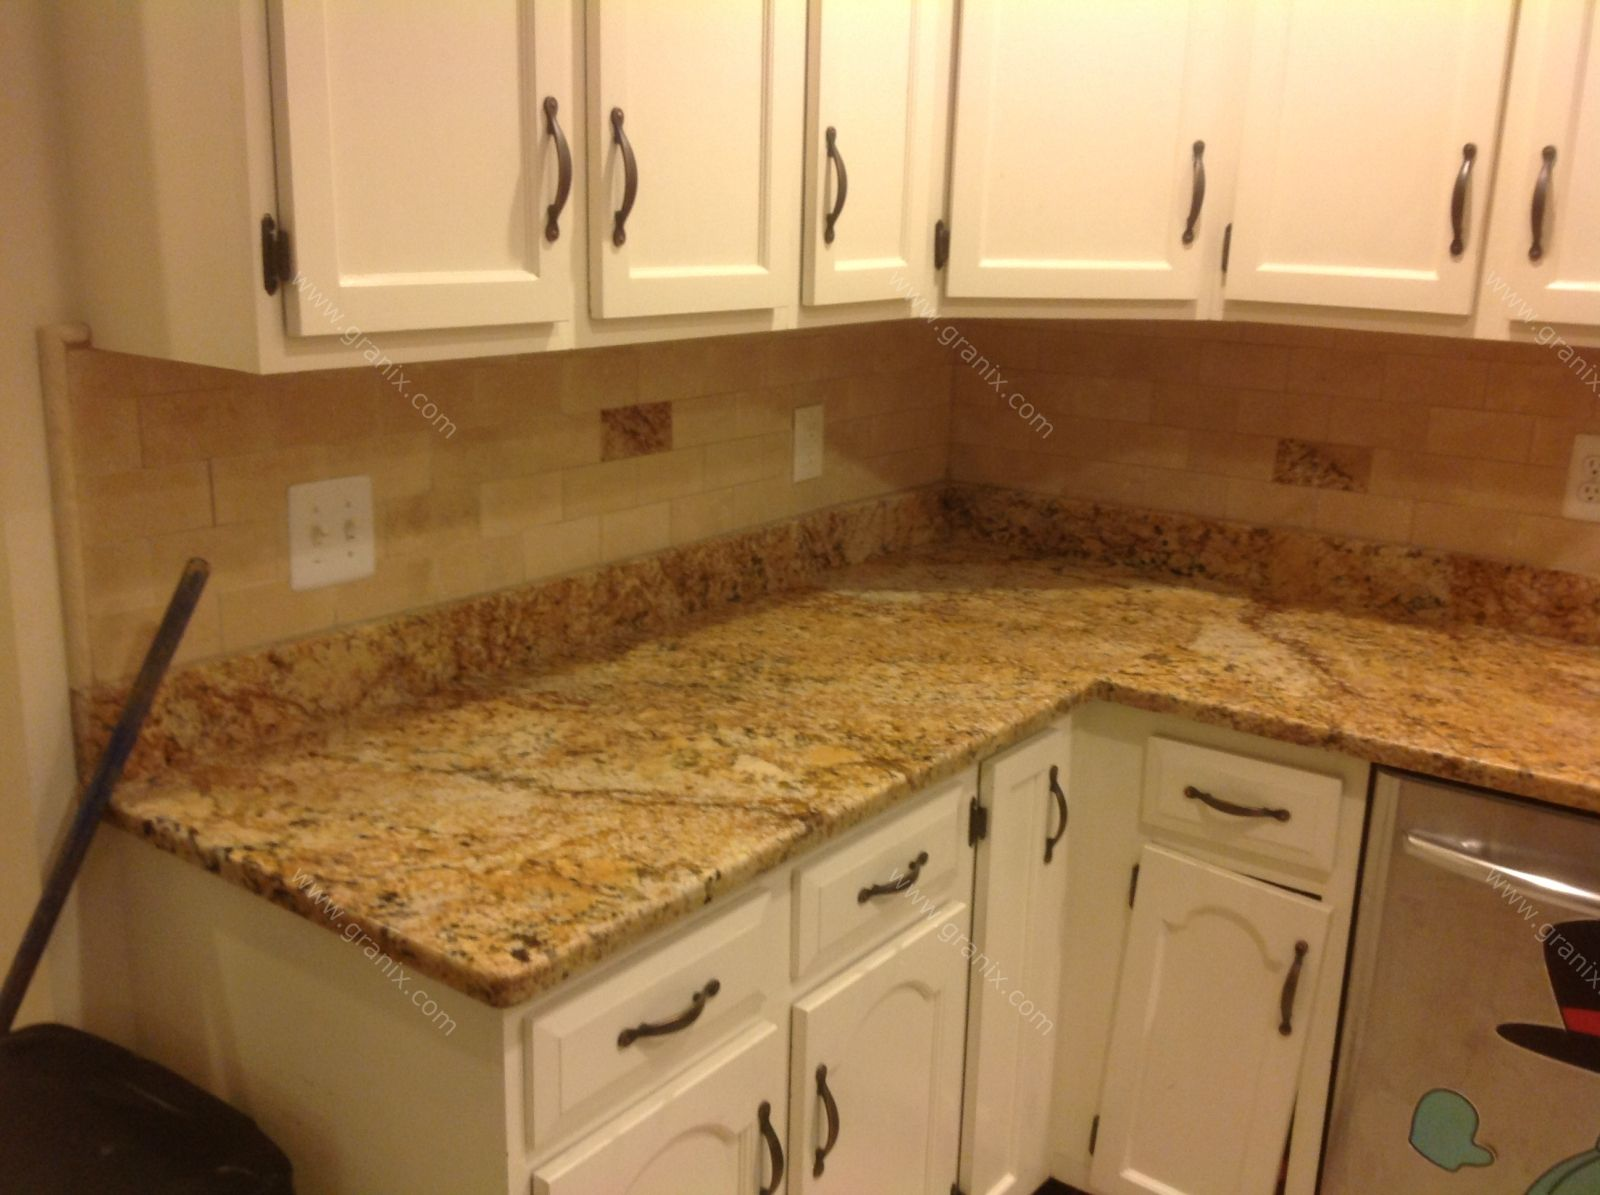 Backsplash ideas for granite countertops leave a reply for 1 inch granite countertops